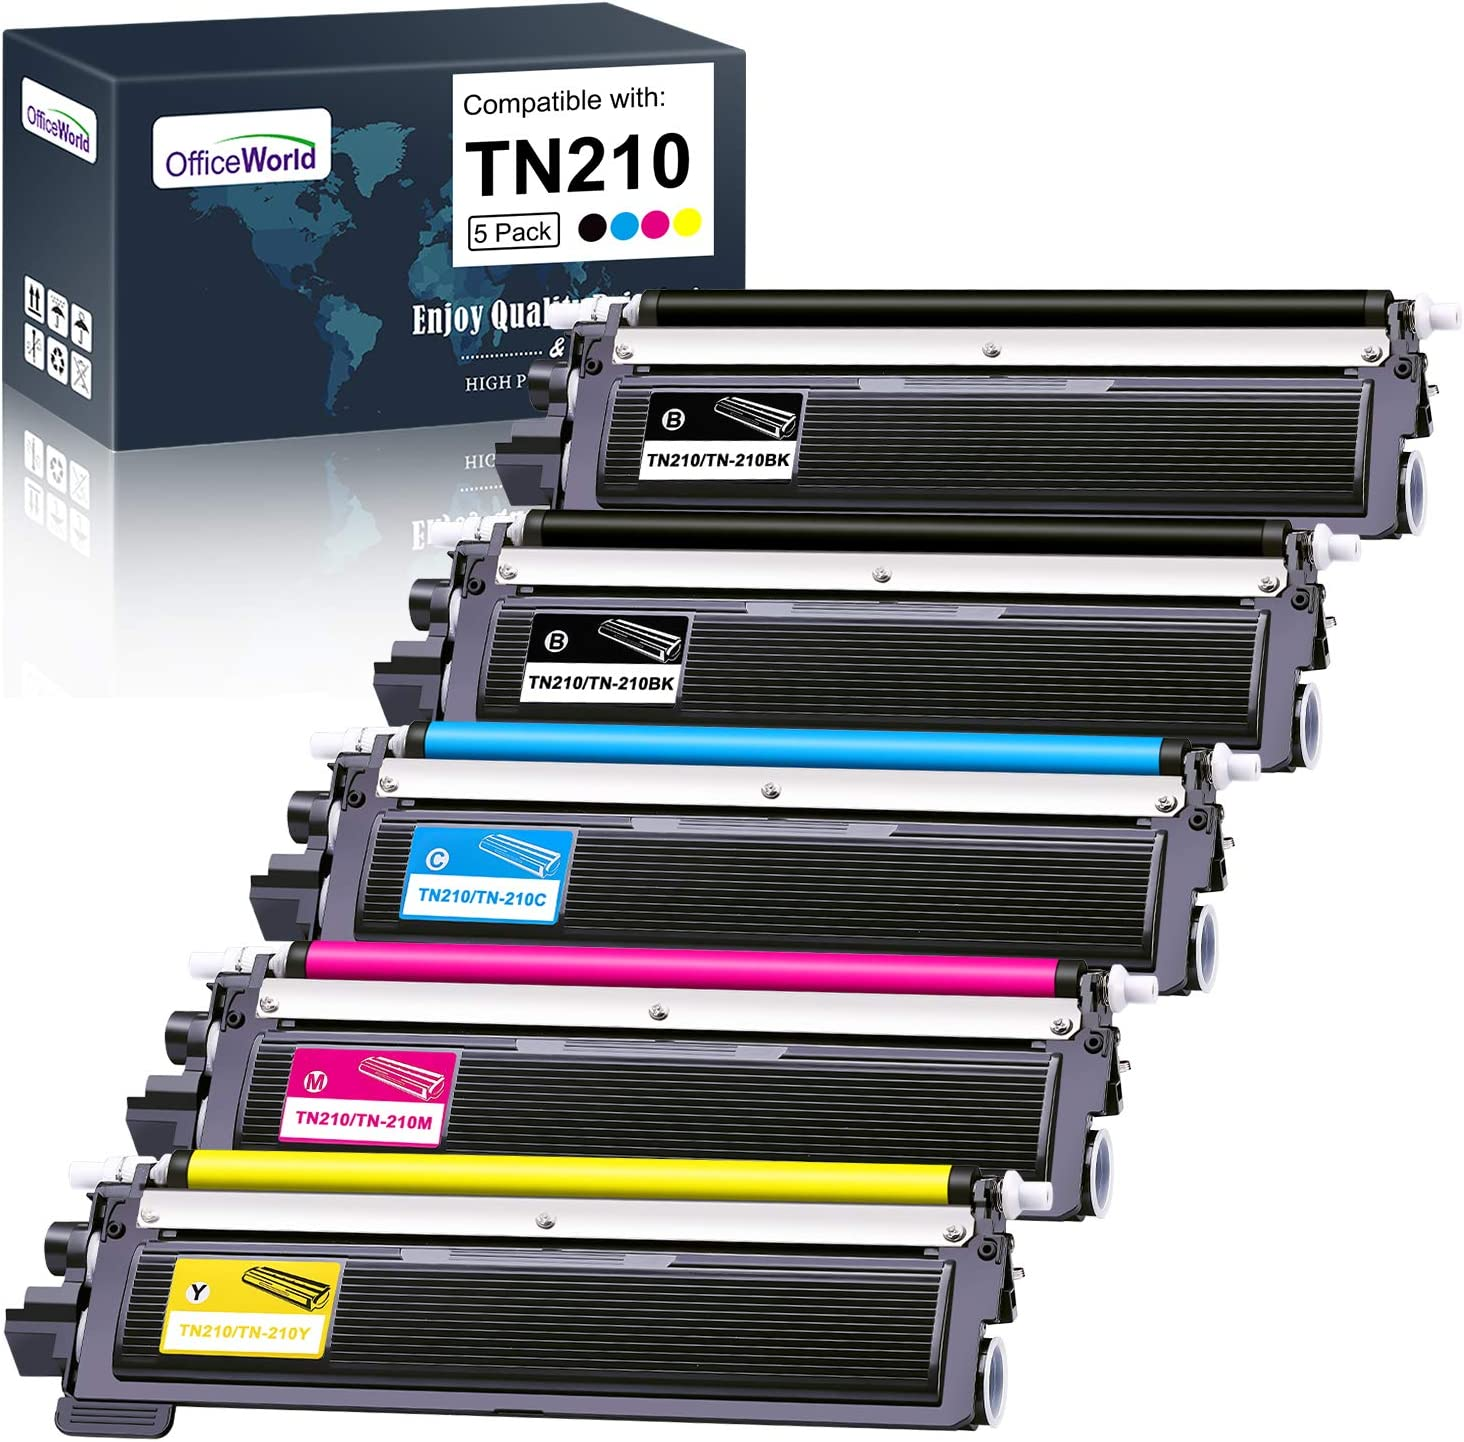 OfficeWorld Compatible Toner Cartridge Replacement for Brother TN210 TN-210 for Brother HL-3040CN HL-3070CW HL-3075CW MFC-9010CN MFC-9320CW MFC-9325CW DCP-9010CN (Black,Cyan,Magenta,Yellow, 5-Pack)